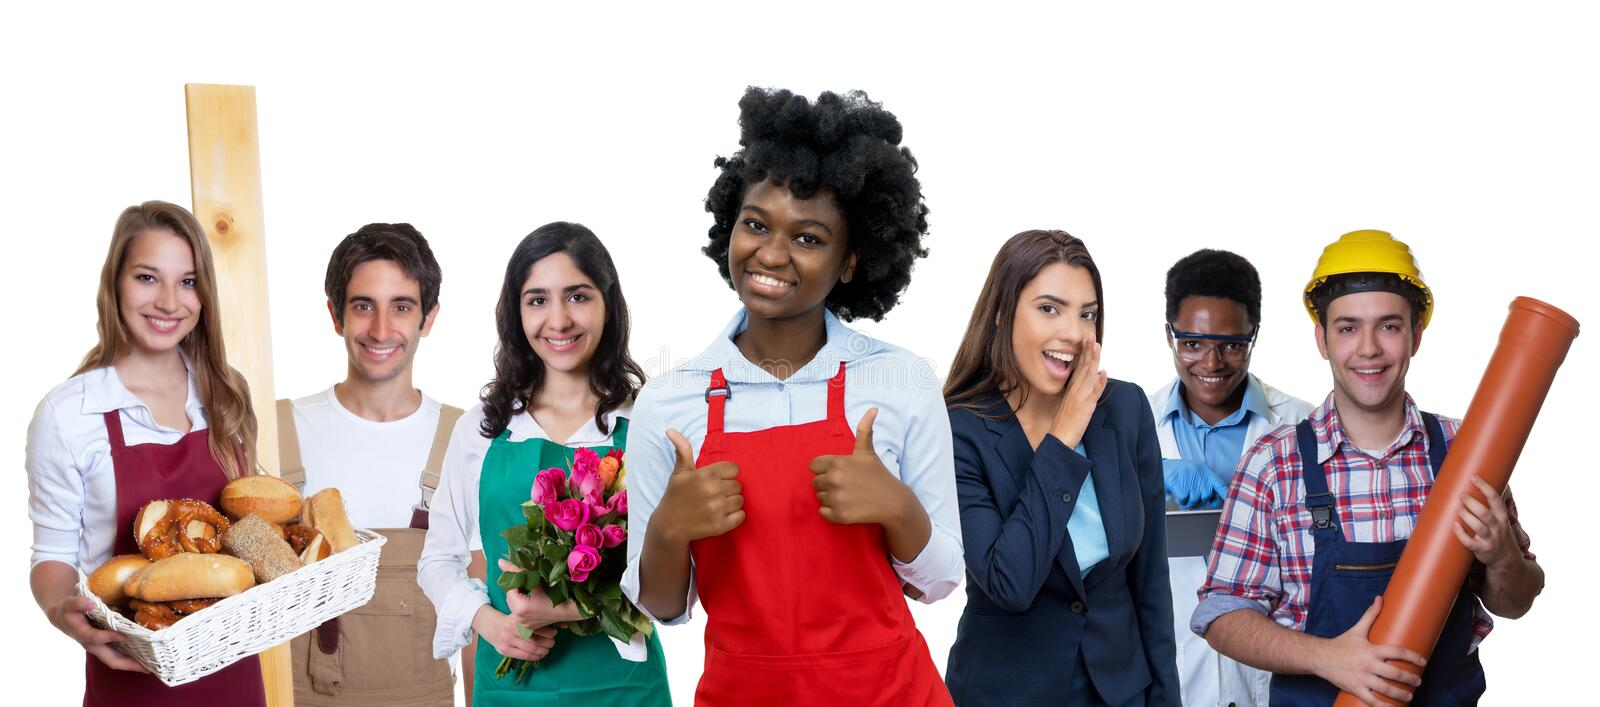 Laughing african american waitress with group of international apprentices stock photos